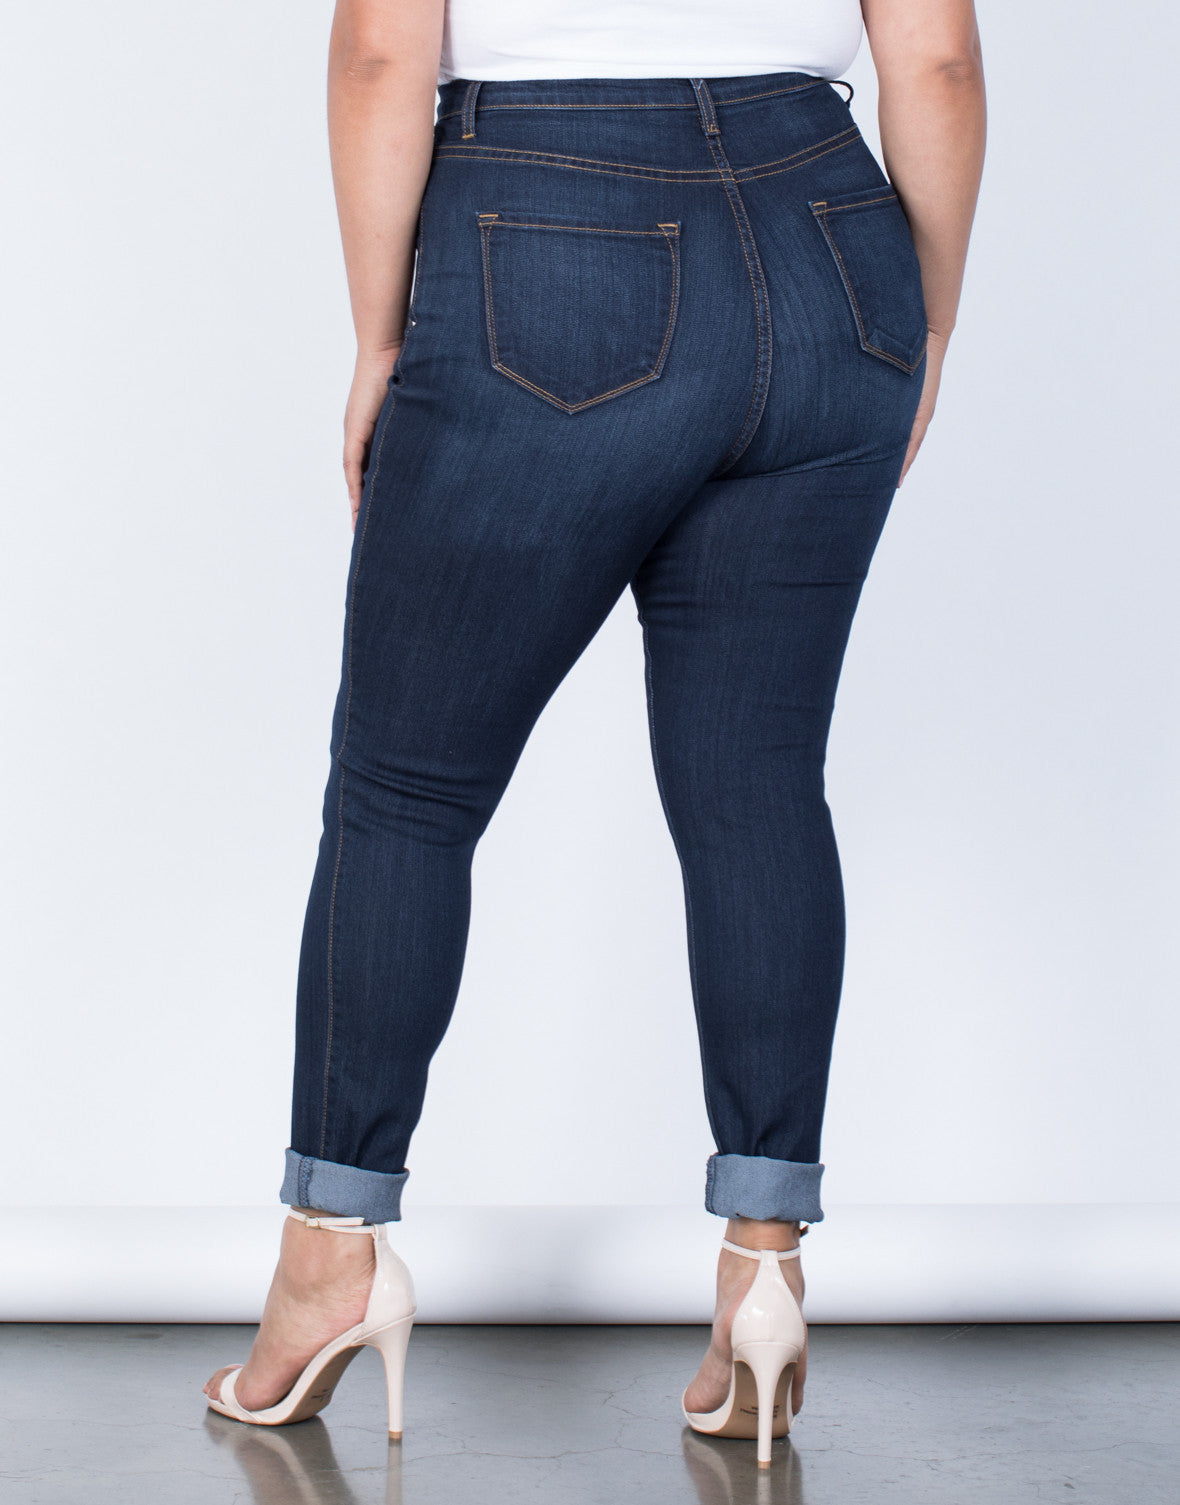 Dark Blue Denim Plus Size High Waisted Skinny Jeans - Back View